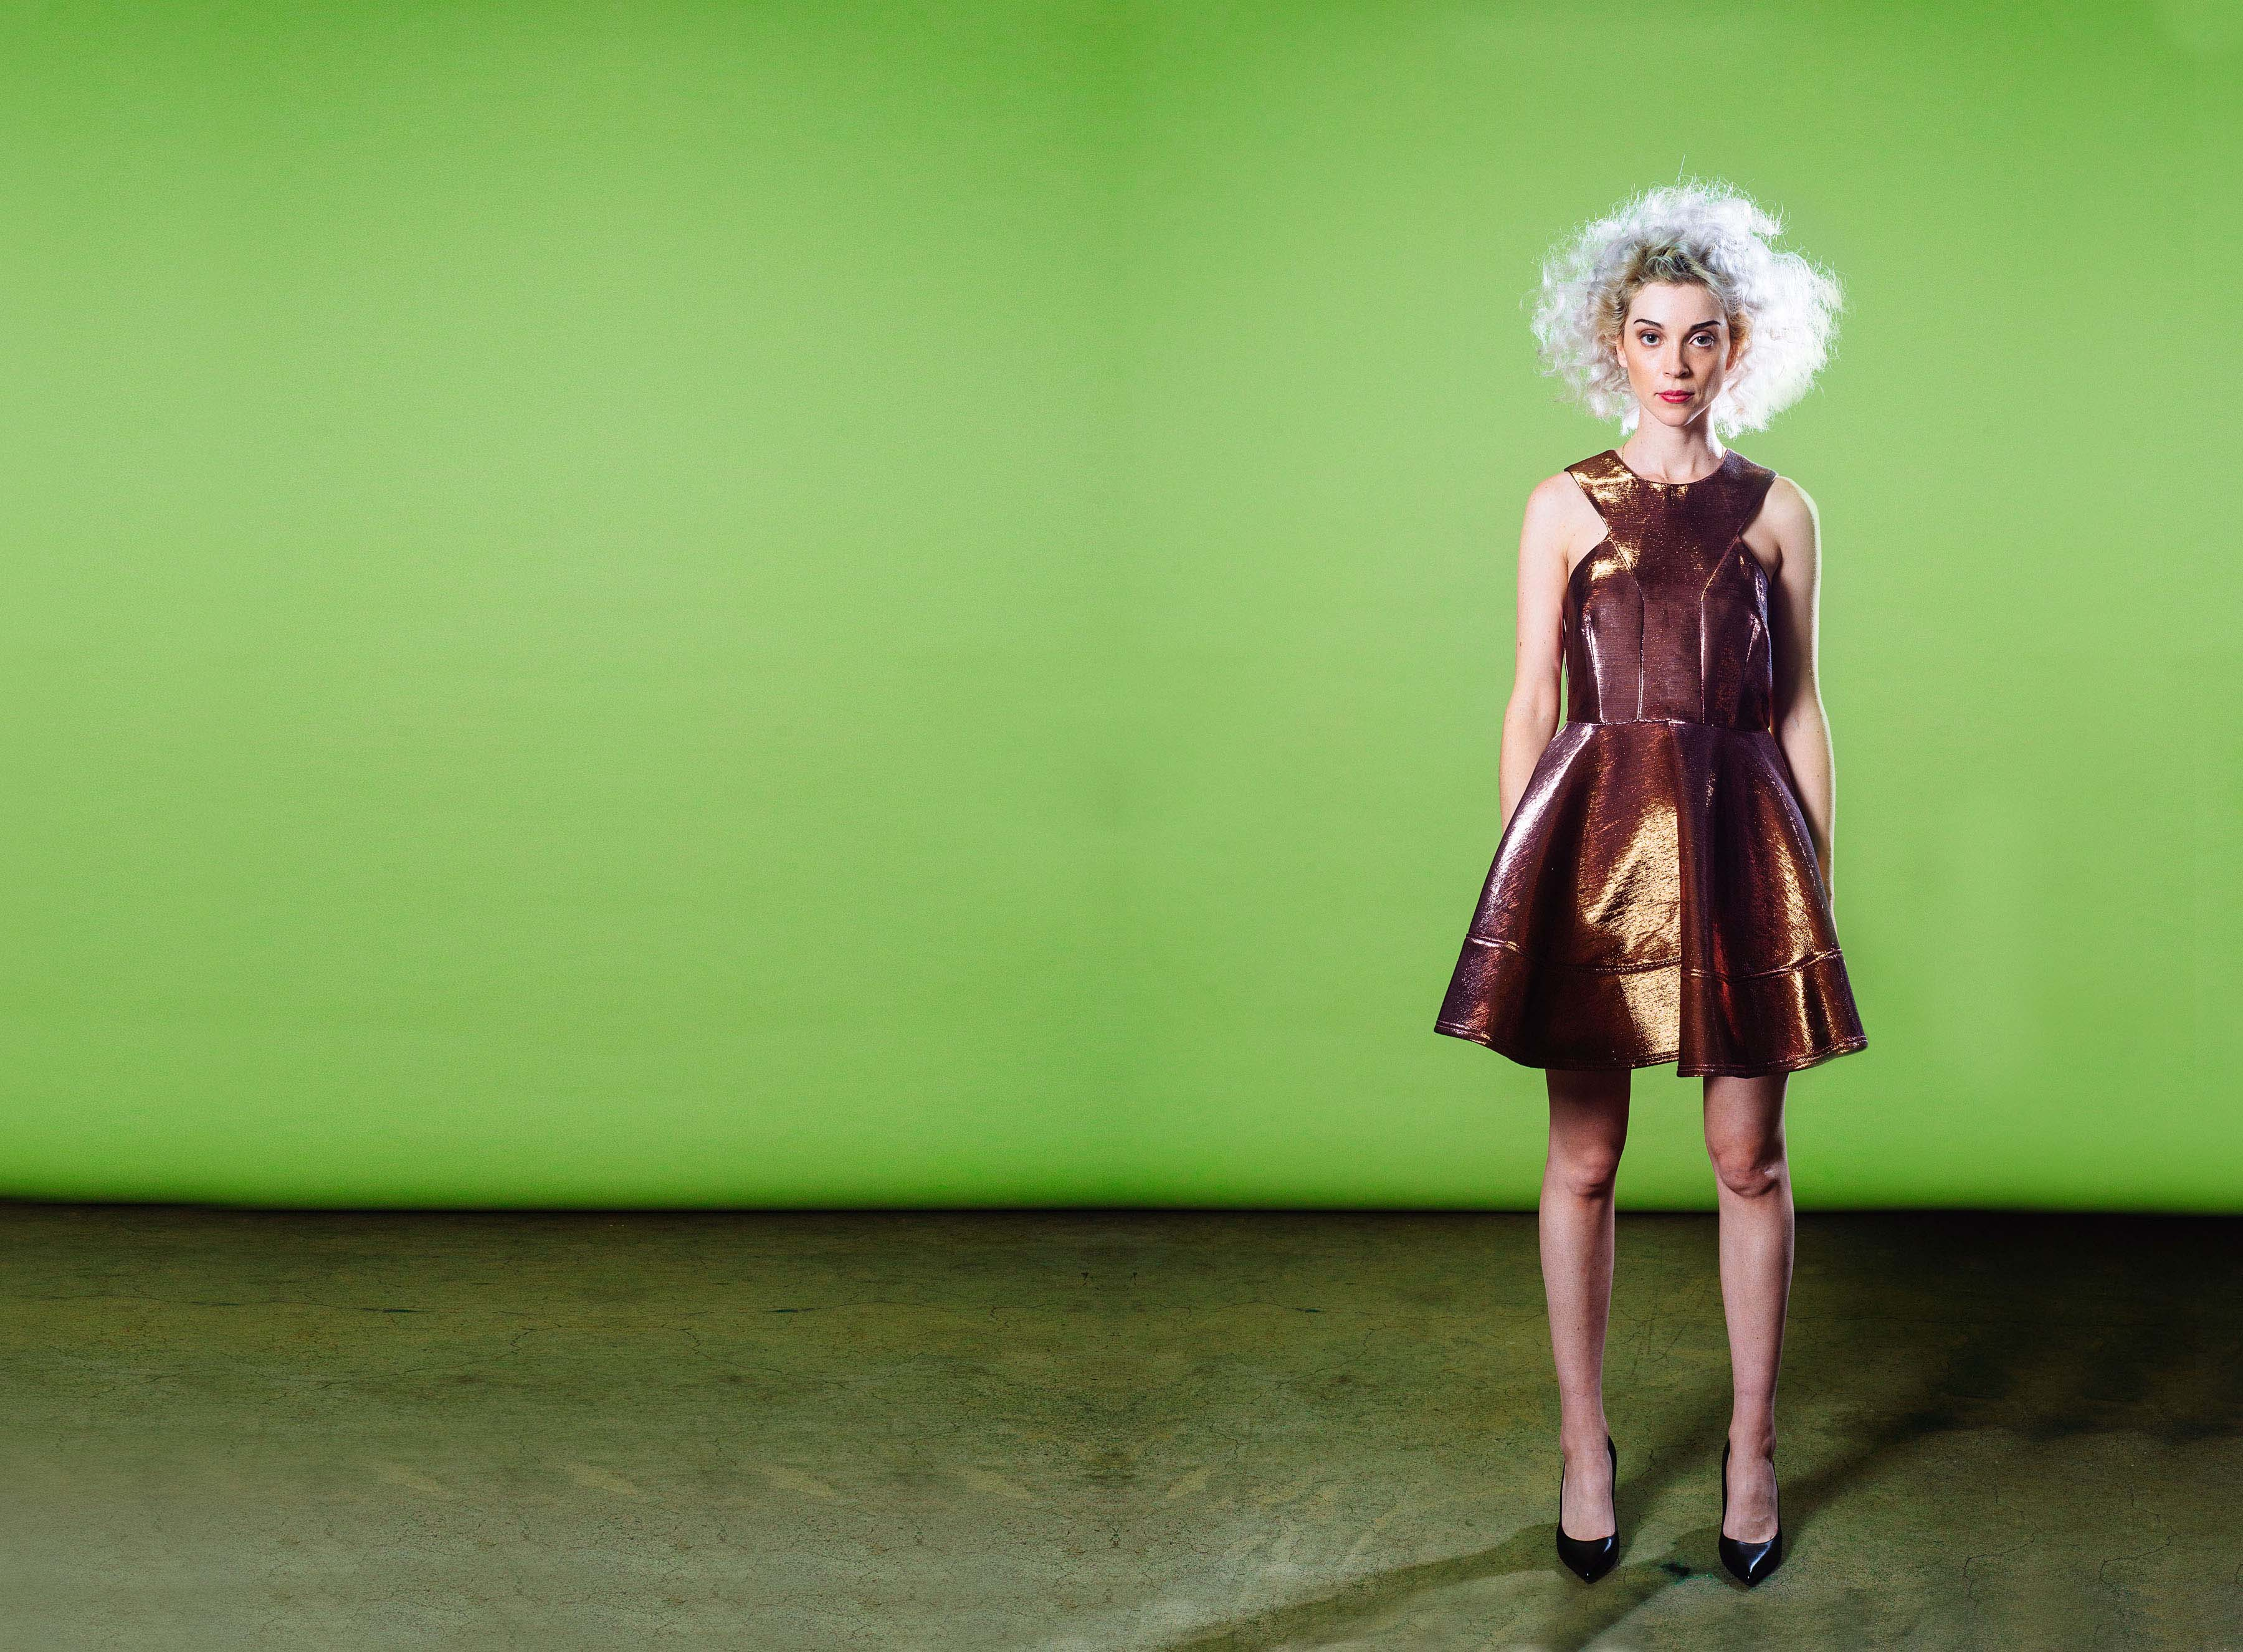 St. Vincent pays tribute to Prince on Beats 1 show